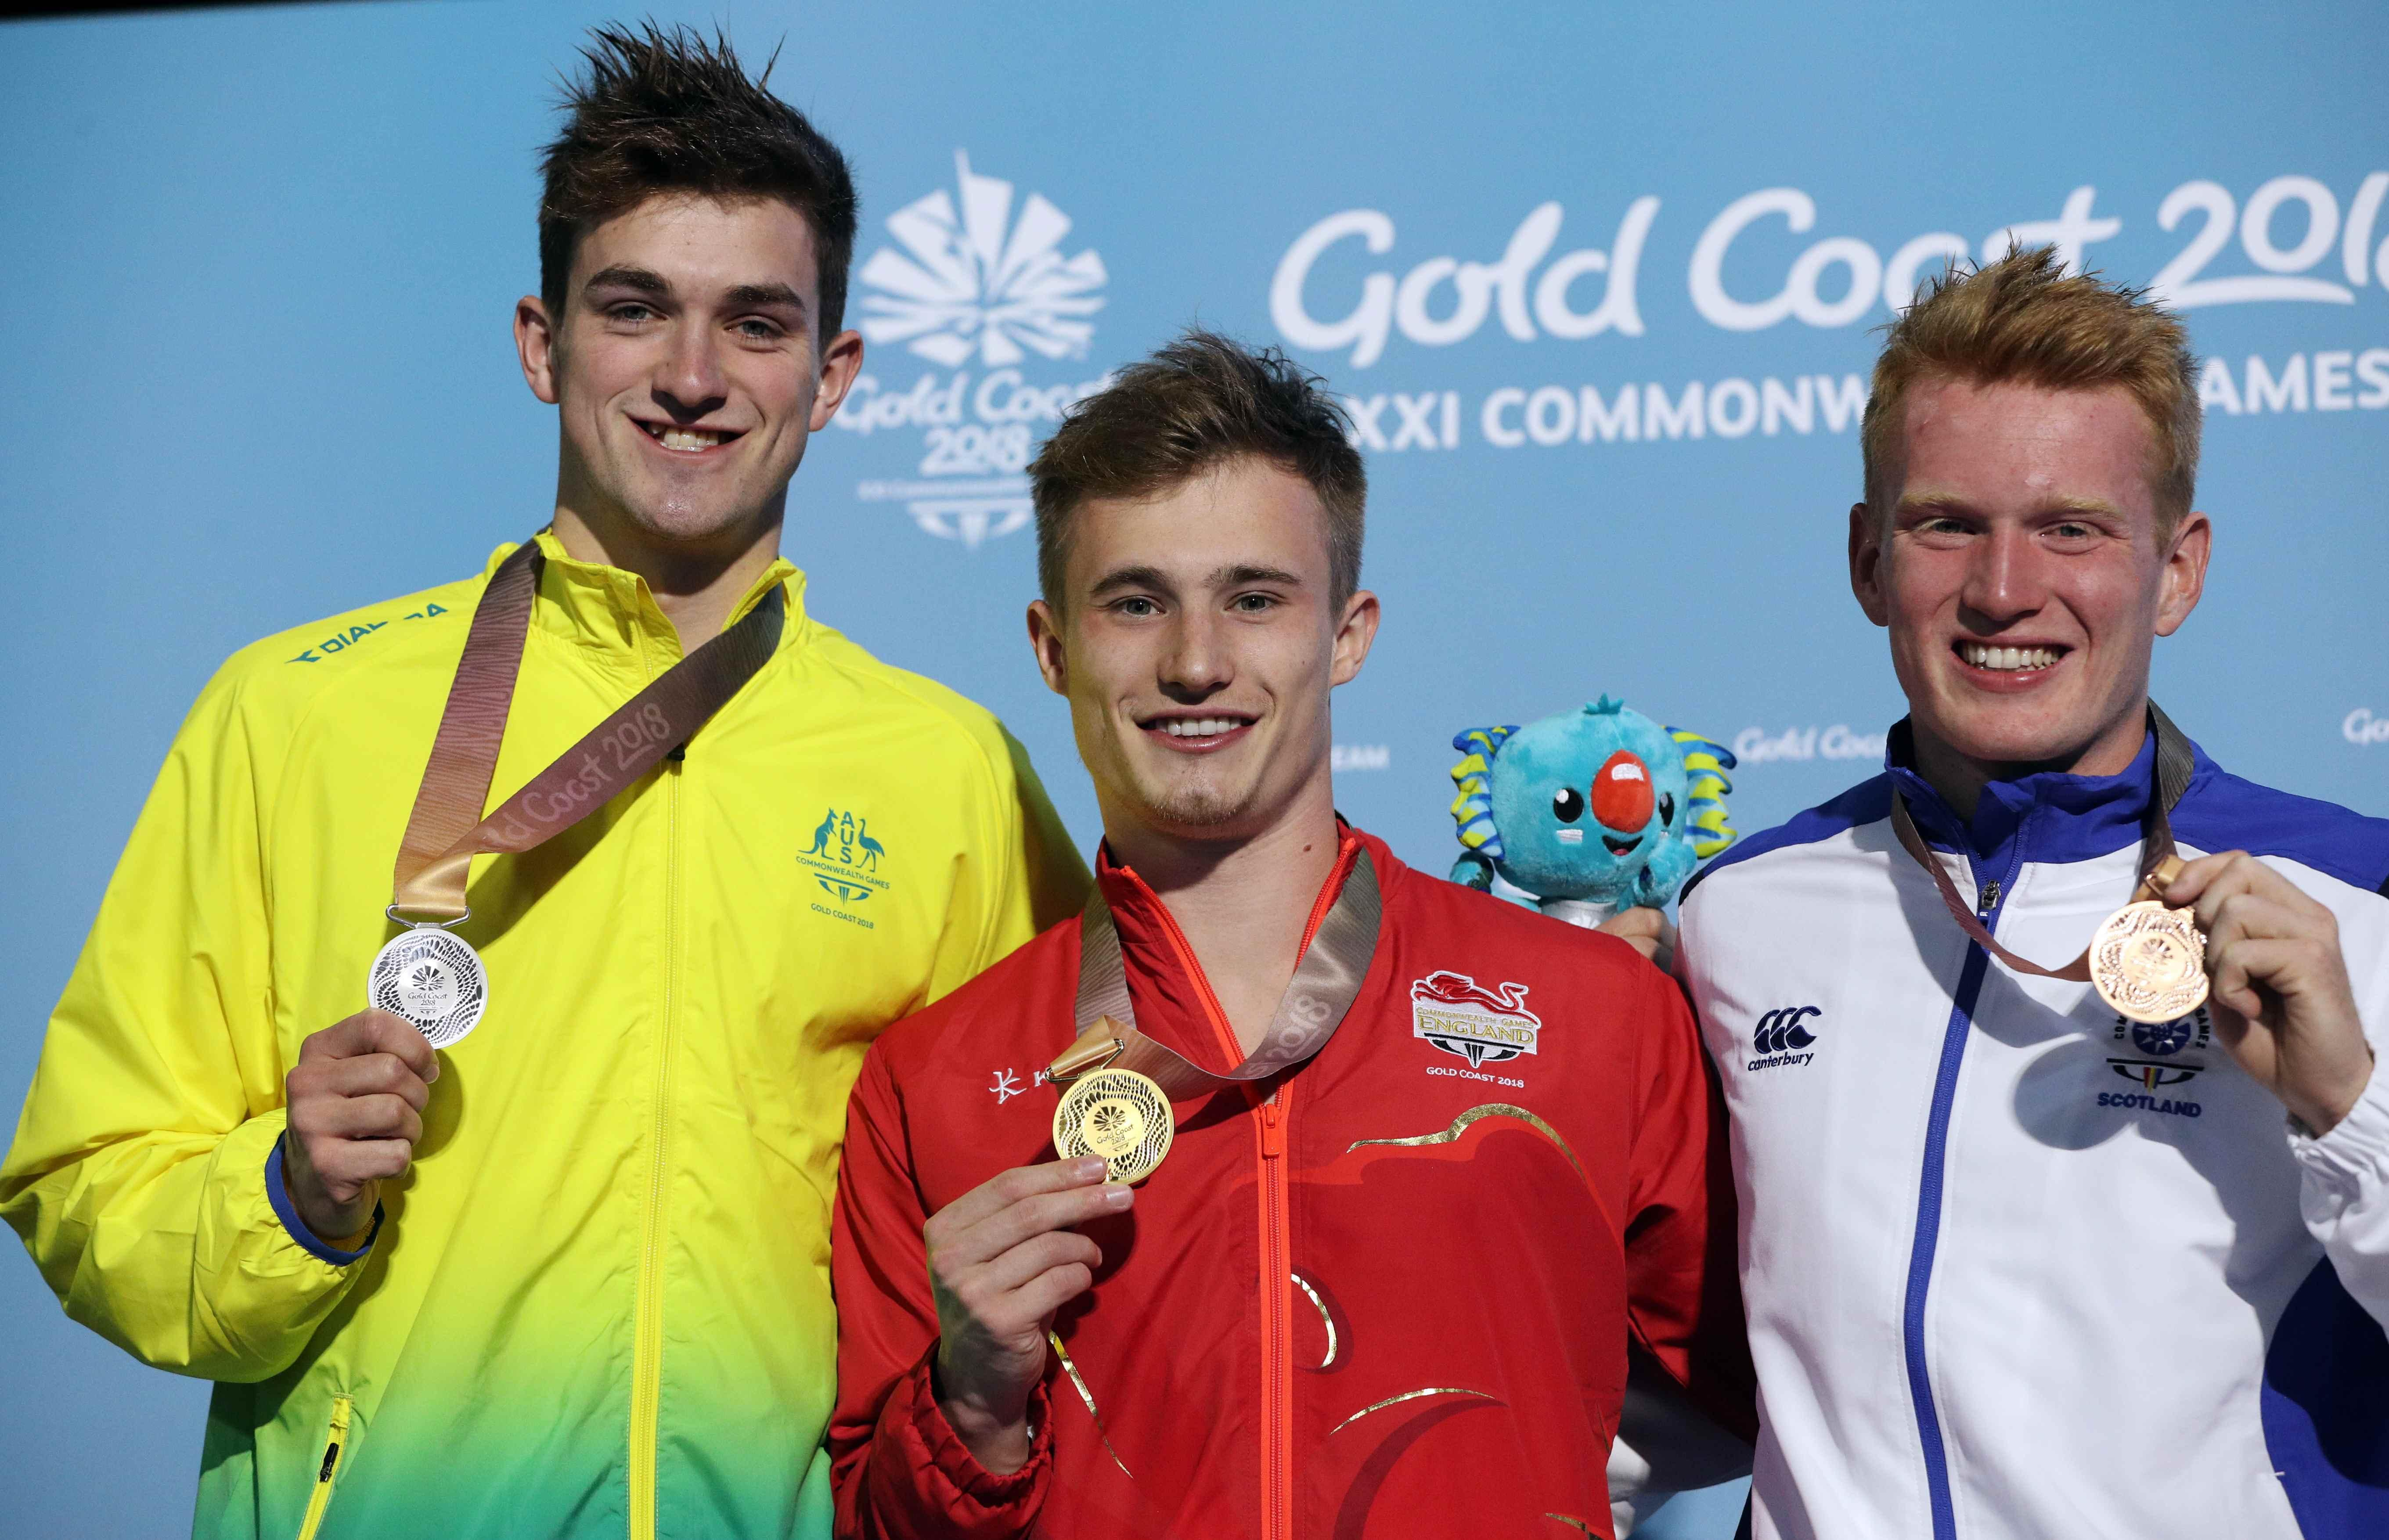 Jack Laugher retained his gold medal from Glasgow 2014